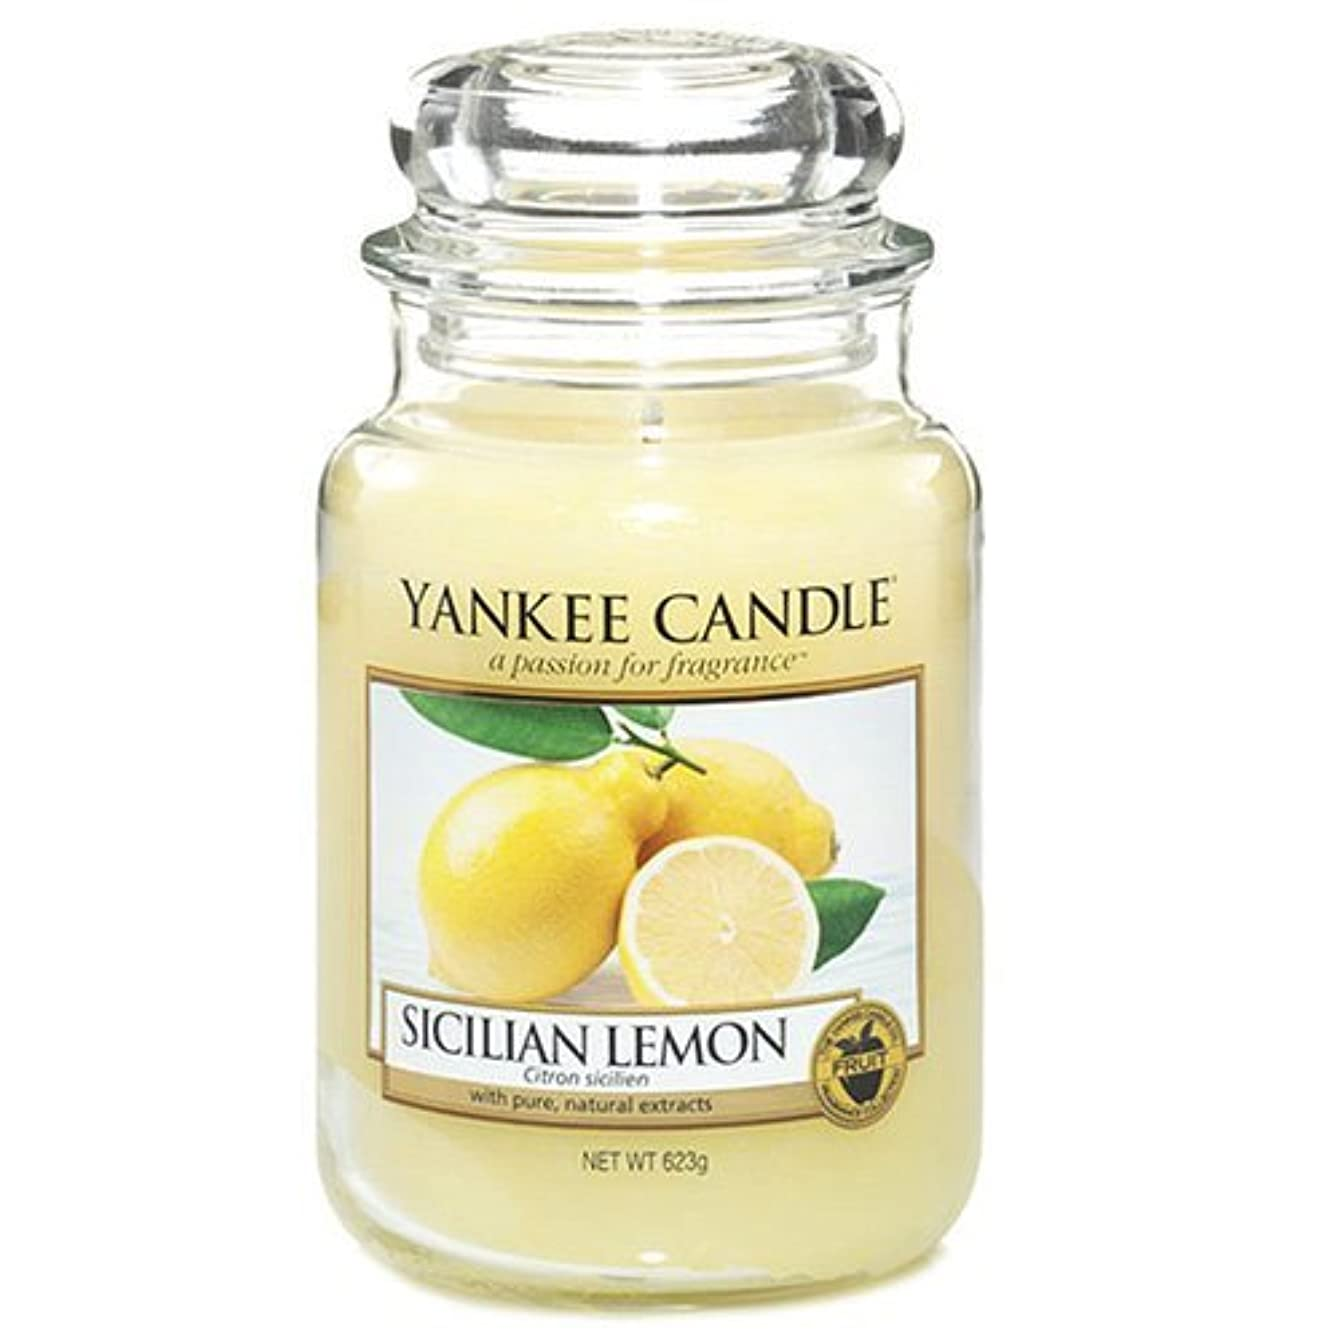 ベギン終了する設置Yankee Candle Large Jar Candle, Sicilian Lemon by Yankee [並行輸入品]